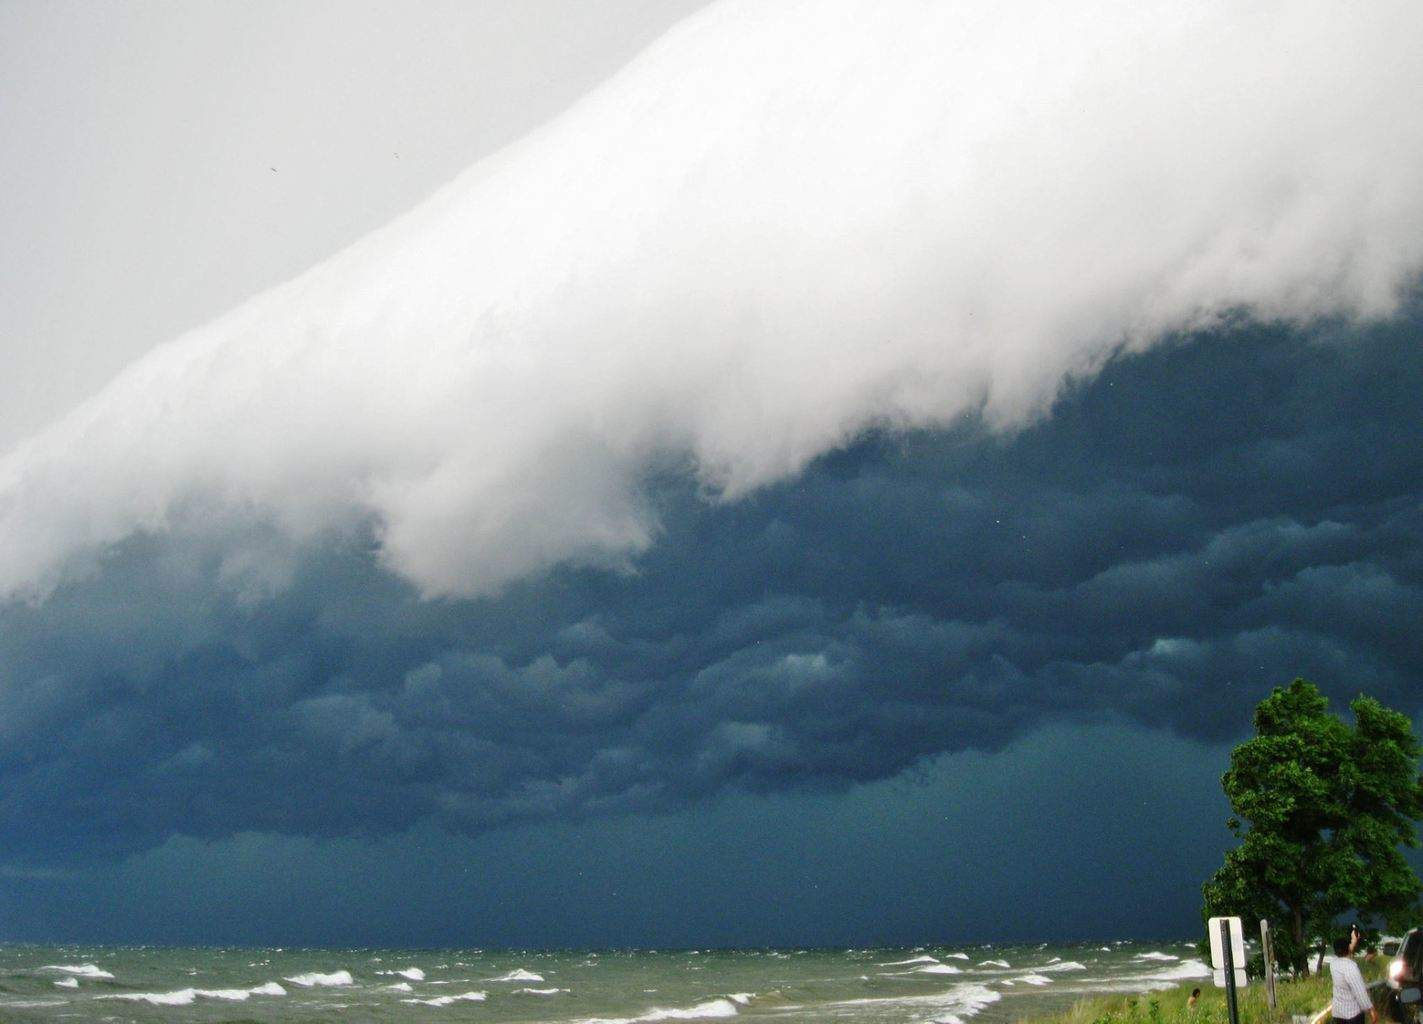 Huge storm system moving into Muskegon, MI on August 2nd. The tiny dark specks in the upper left corner are birds that were soaring along the leading edge of the gust front, like surfers riding a monstrous wave. If I had arrived at this beach just two minutes later, I would have missed this whole spectacular scene..